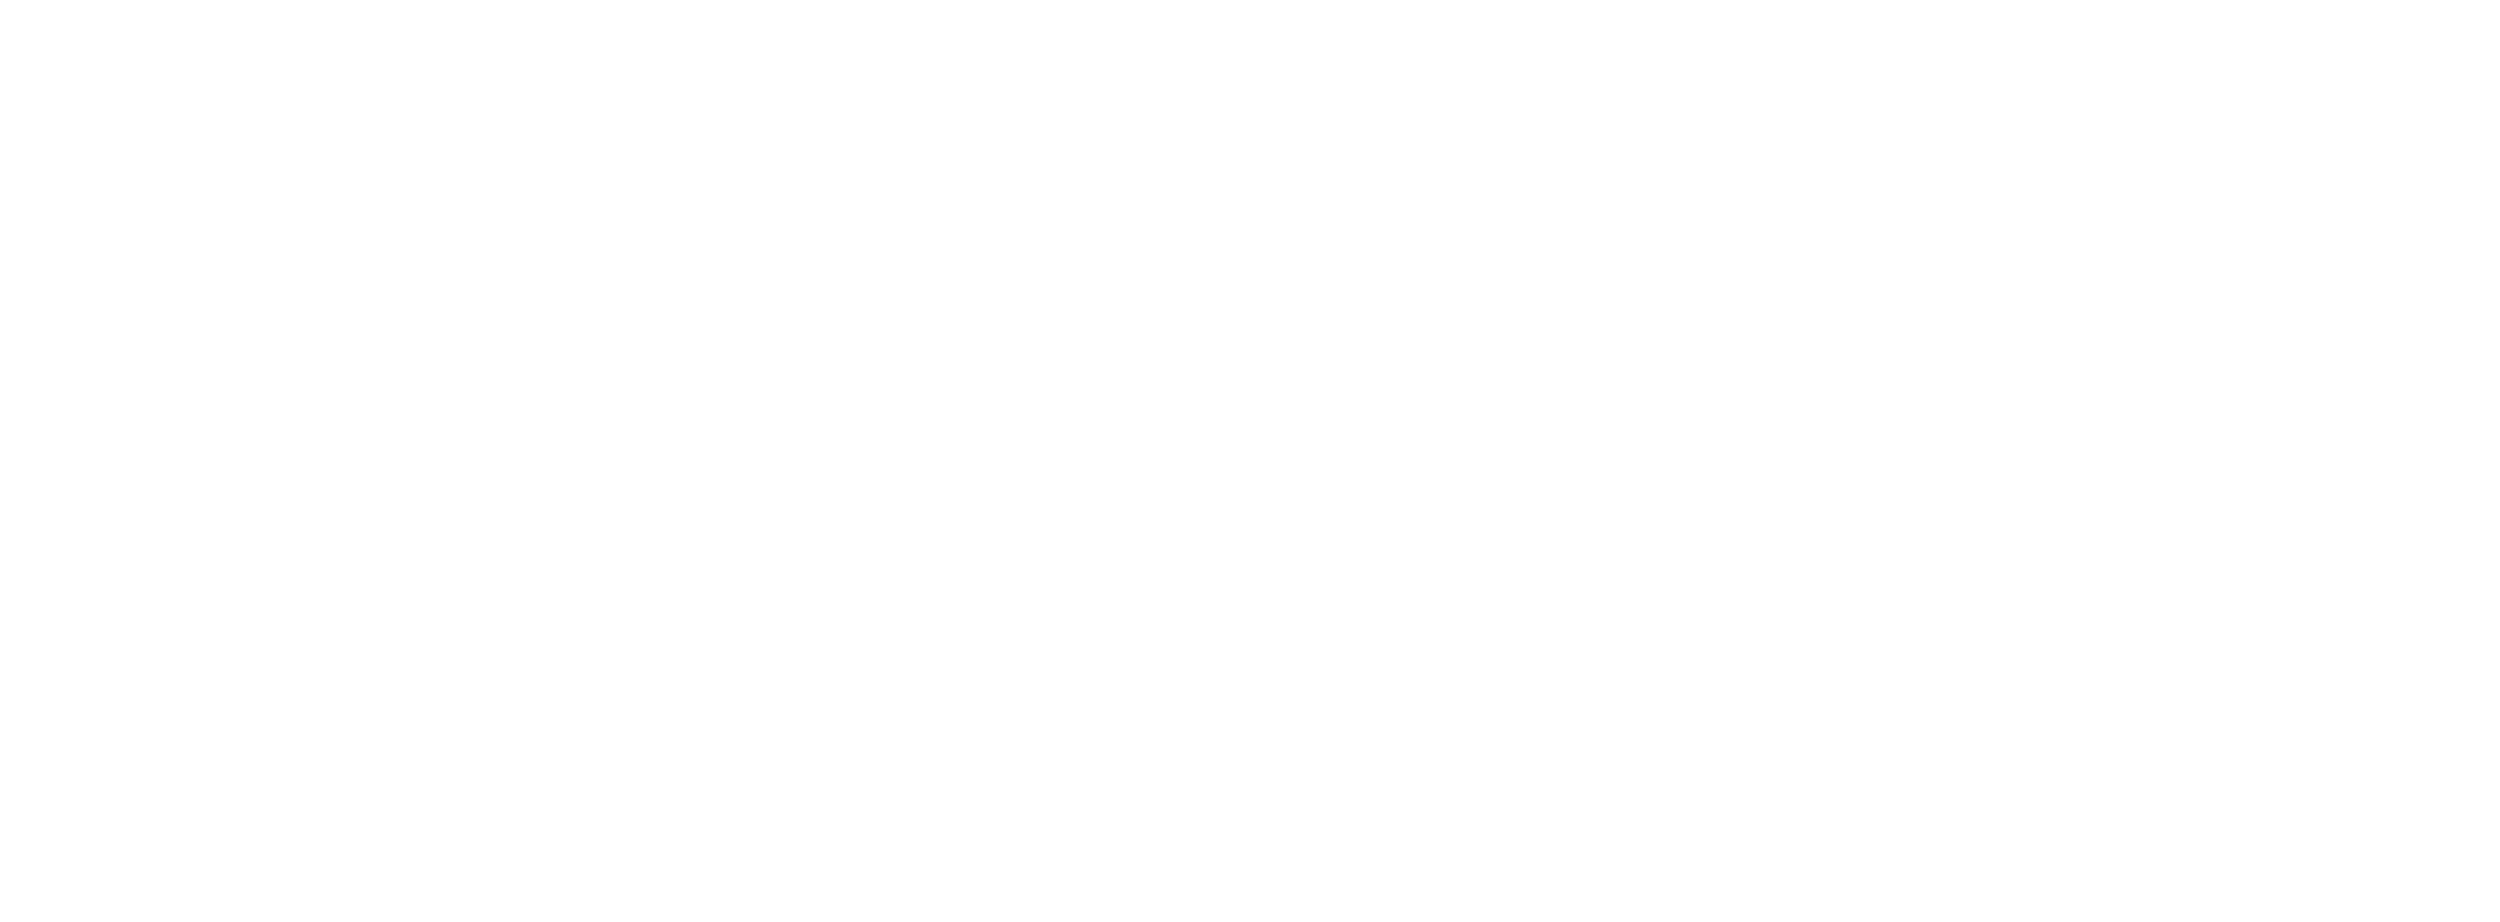 04 NATIONAL PHYSICAL LABORATORY.png